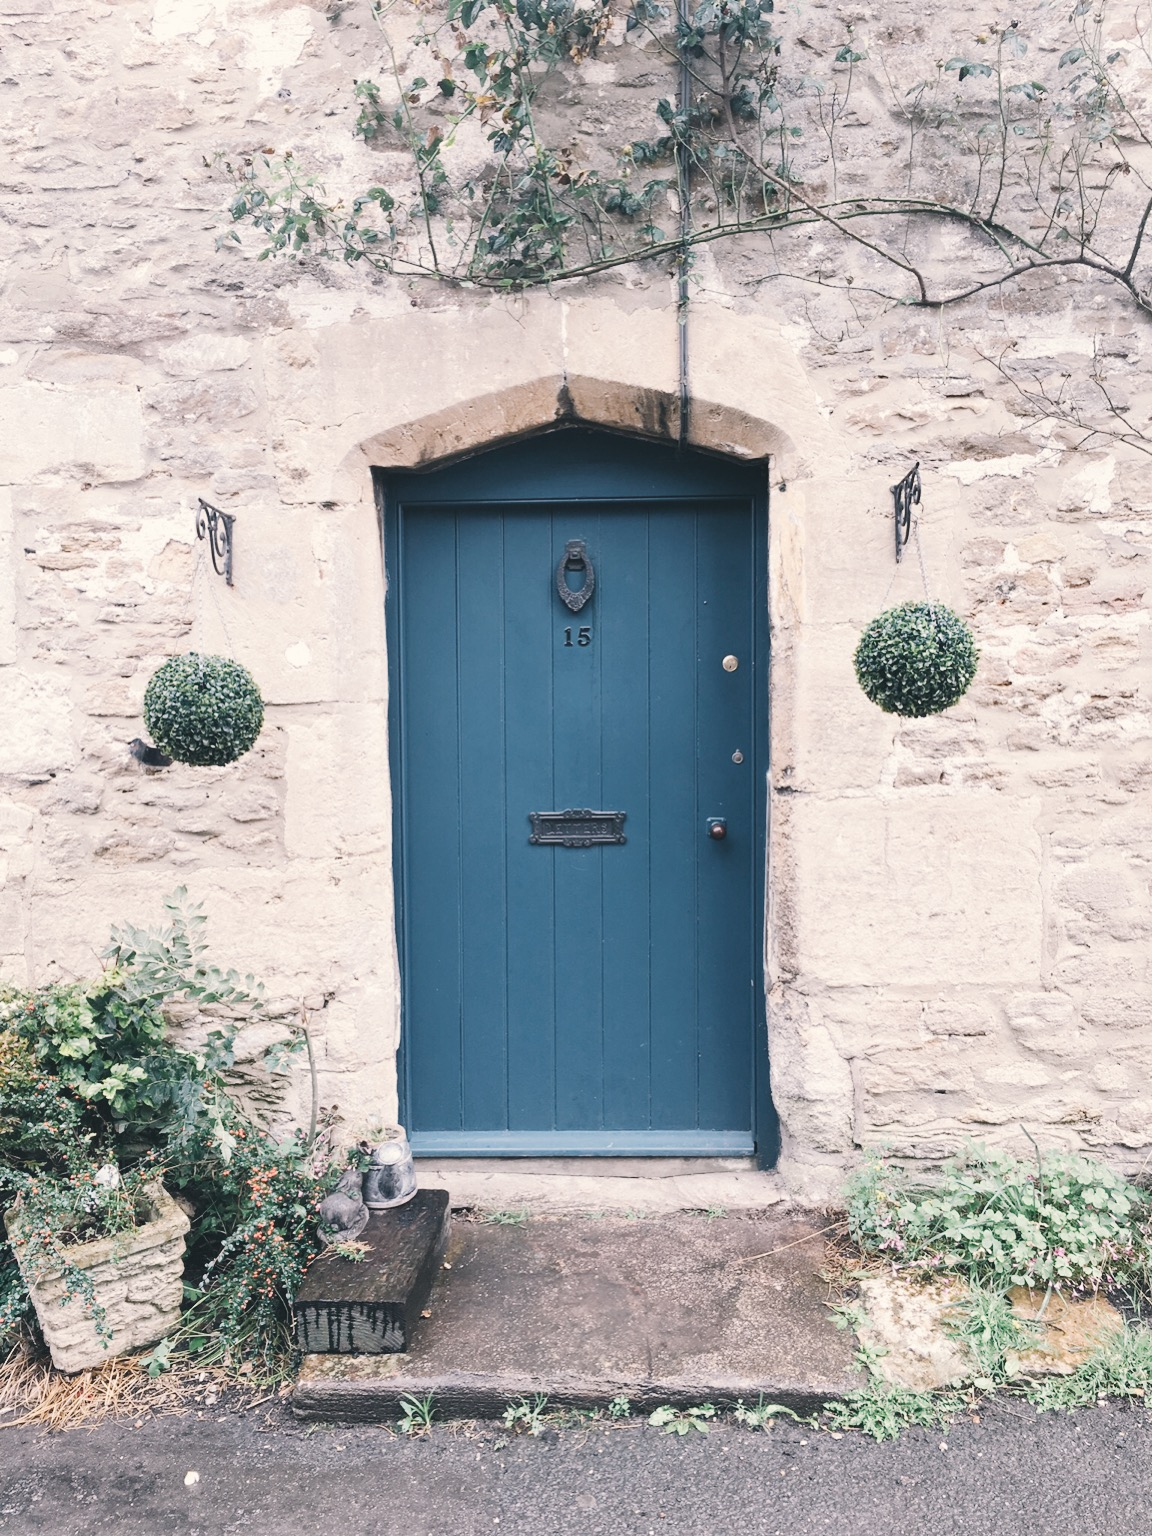 Quaint doorway in English countryside